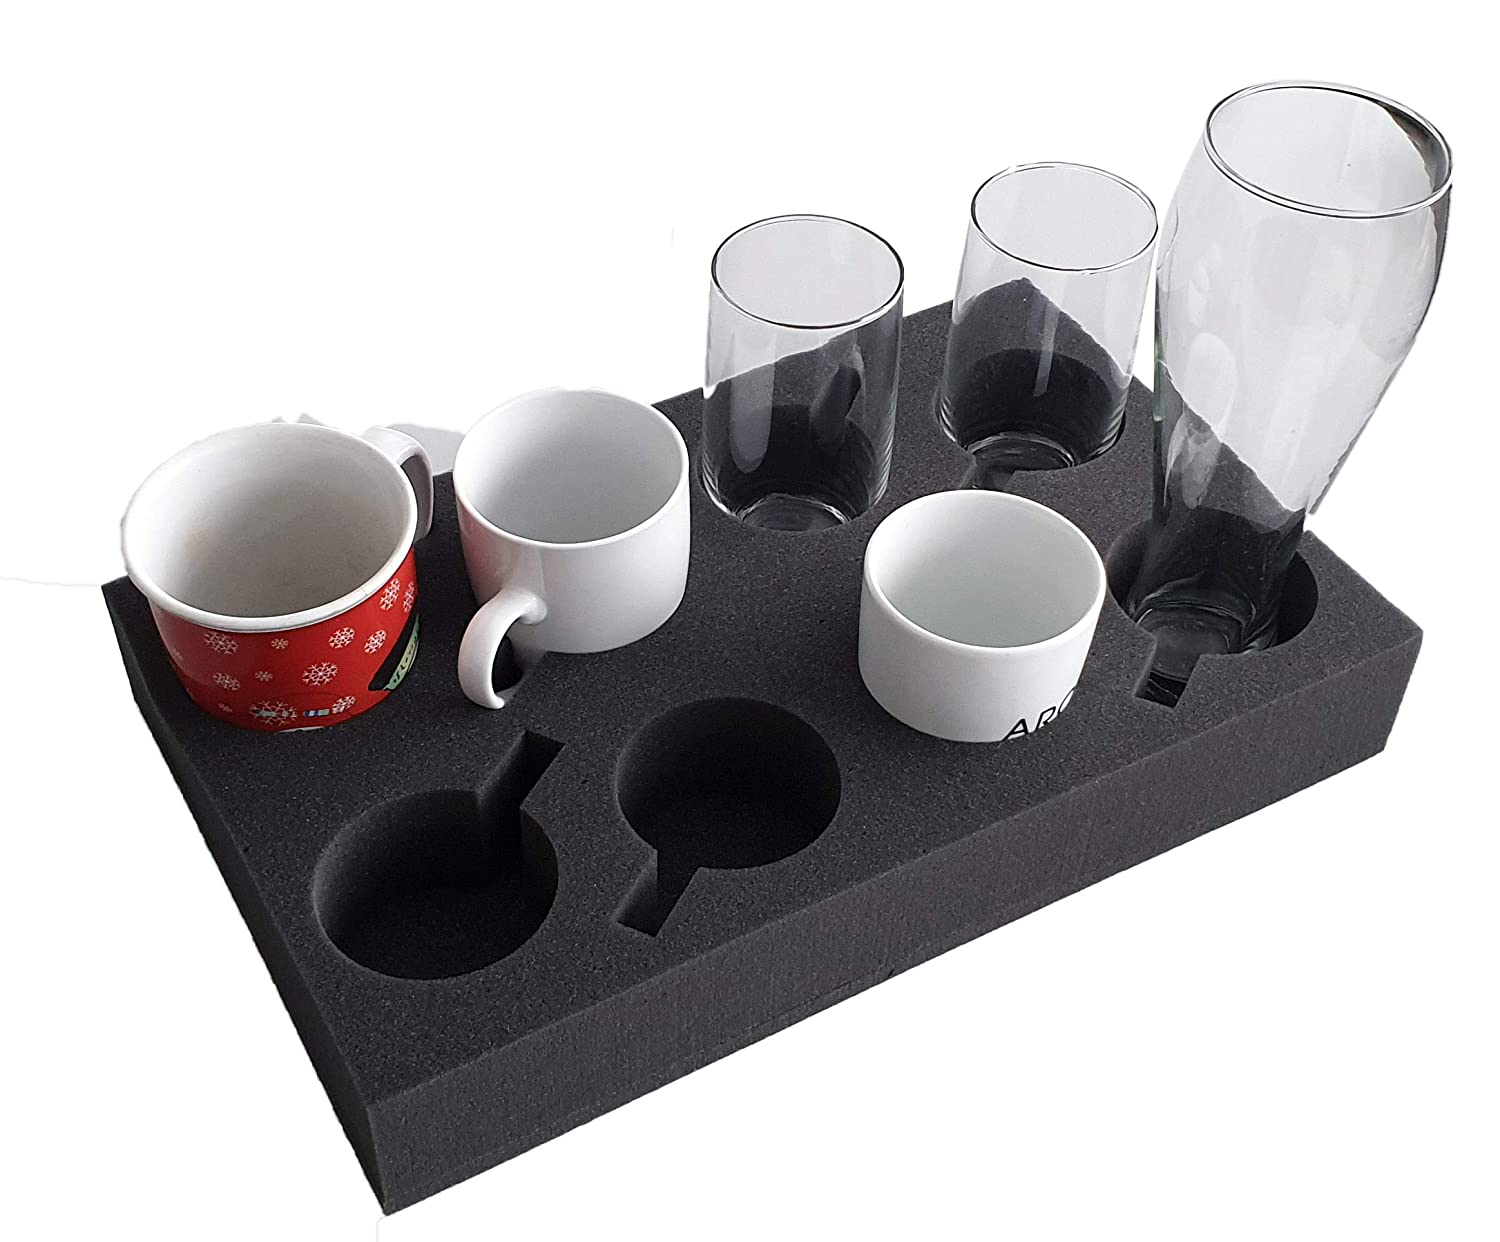 Cup Holder Glass Holder for up to 12 Pieces Foam for Camping Caravans Motorhomes Boats